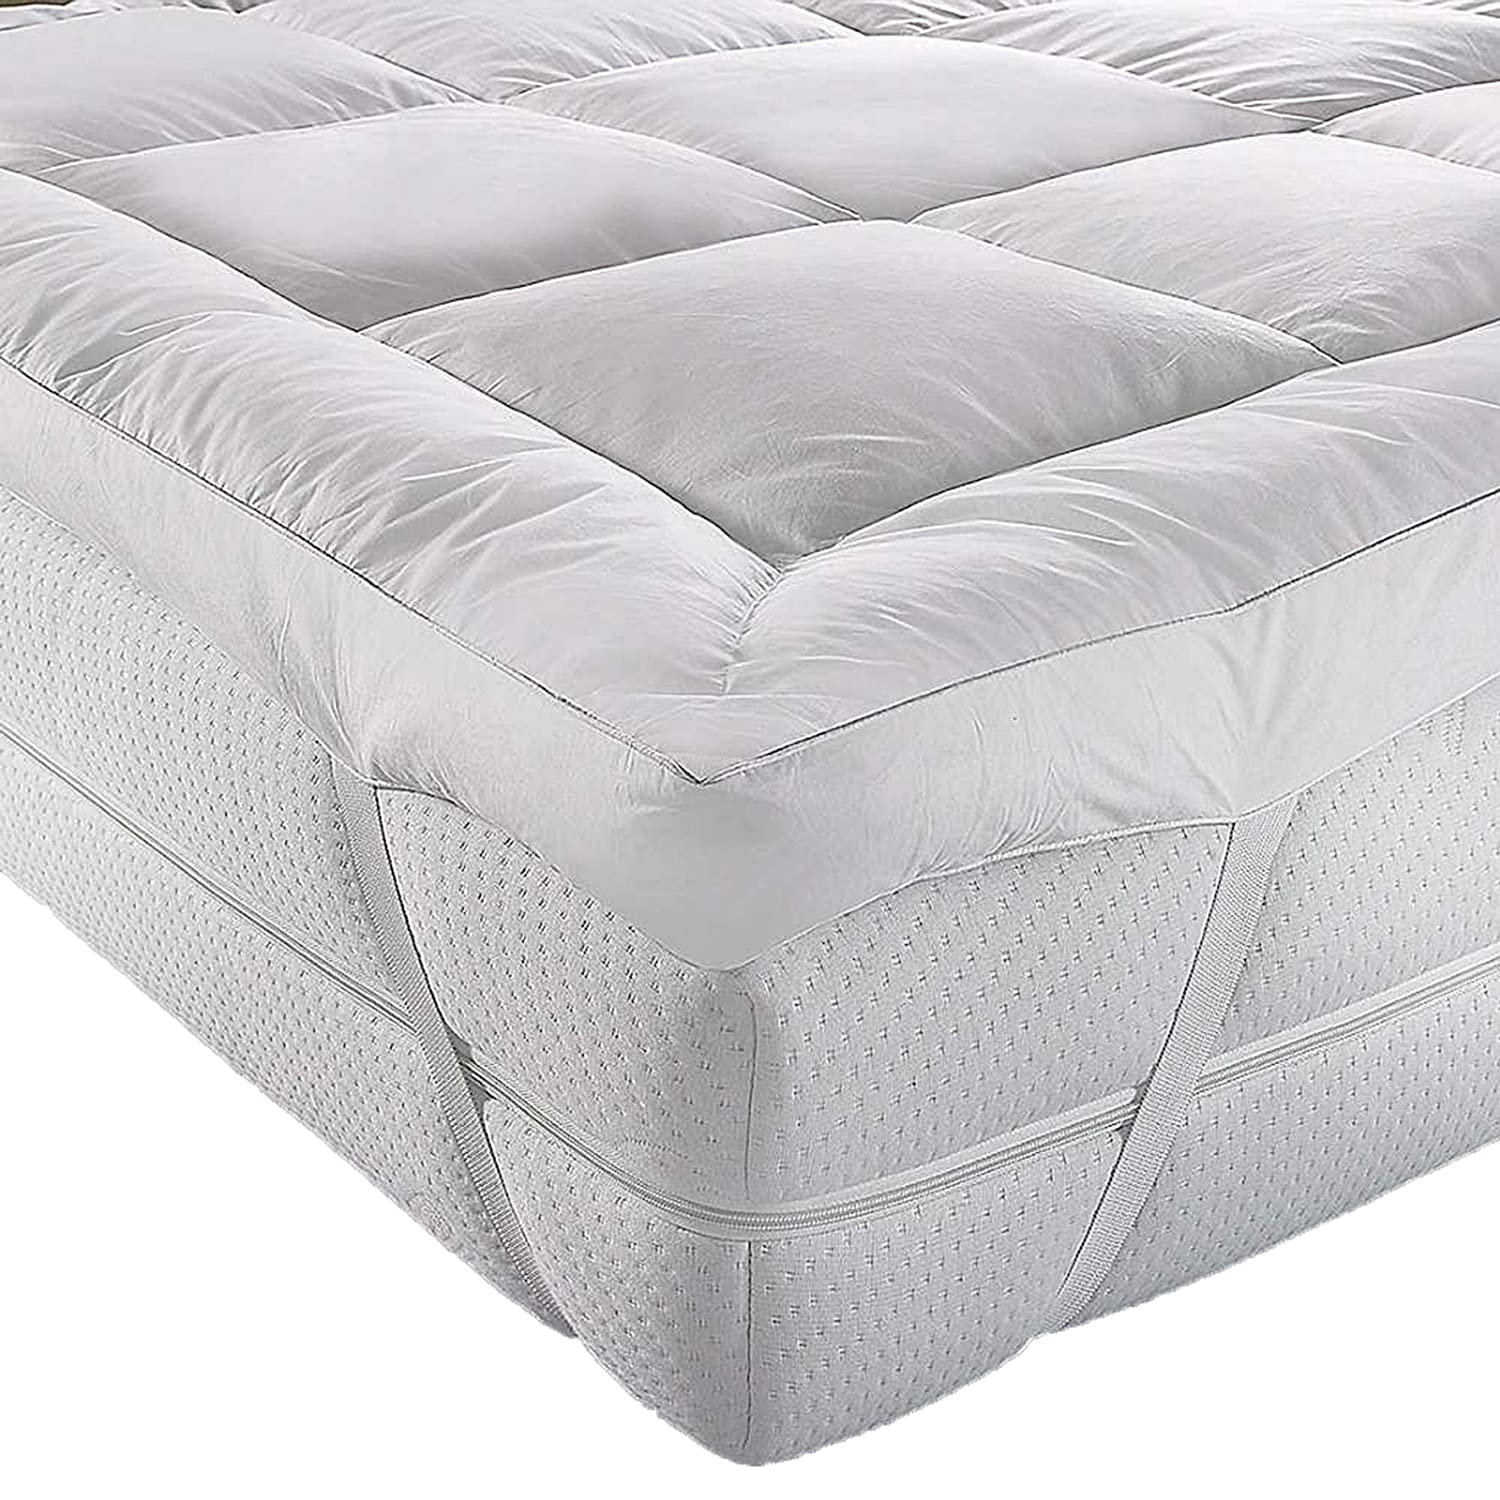 AR'S HOTEL QUALITY(Microlite) MICRO FIBER COT BED MATTRESS TOPPER THICK 5 CM, BOX STITCHED,ANTI ALLERGENIC bedding stuff